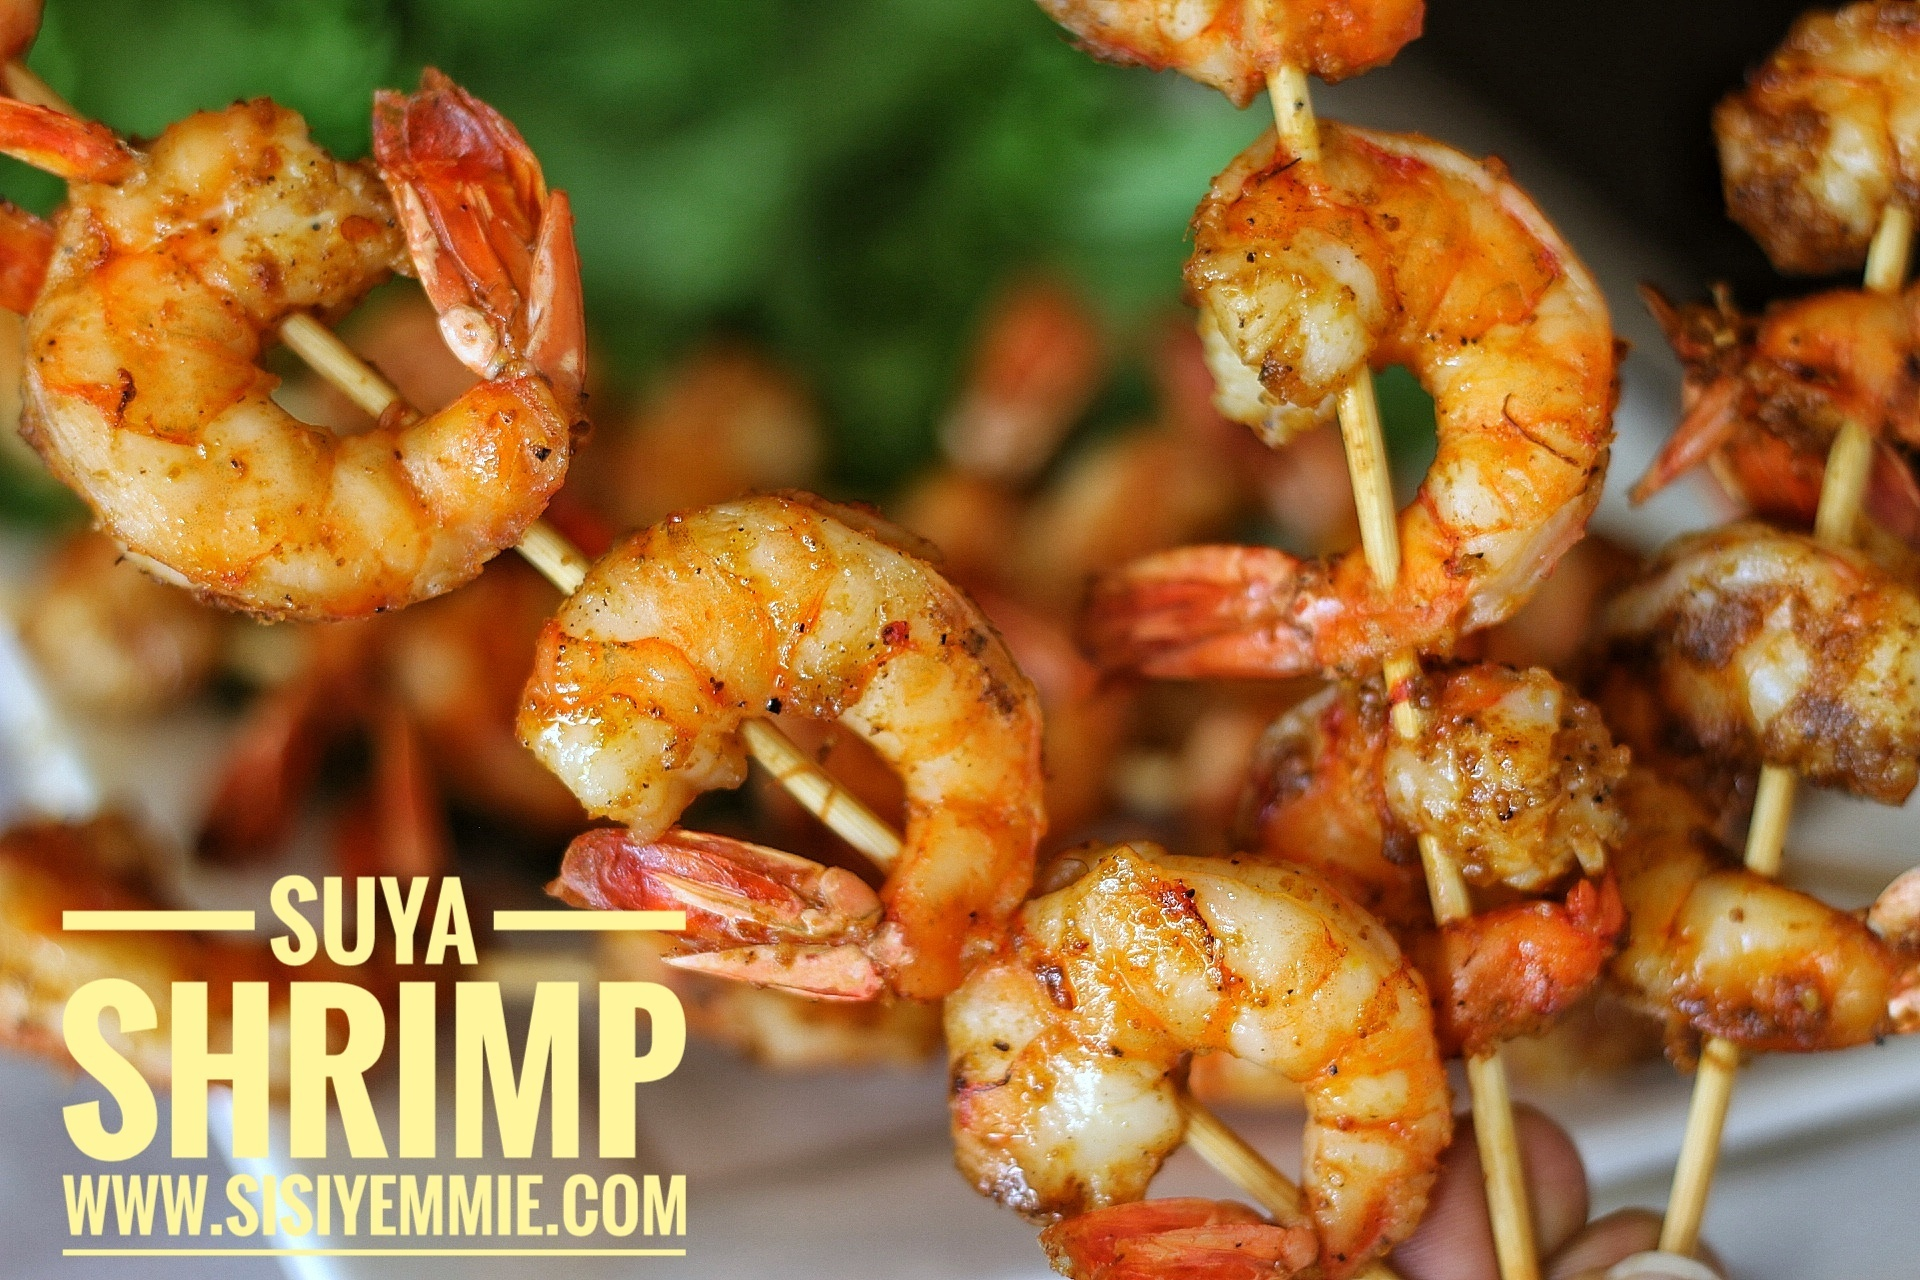 SUYA SHRIMP RECIPE | OVEN BAKED PRAWNS